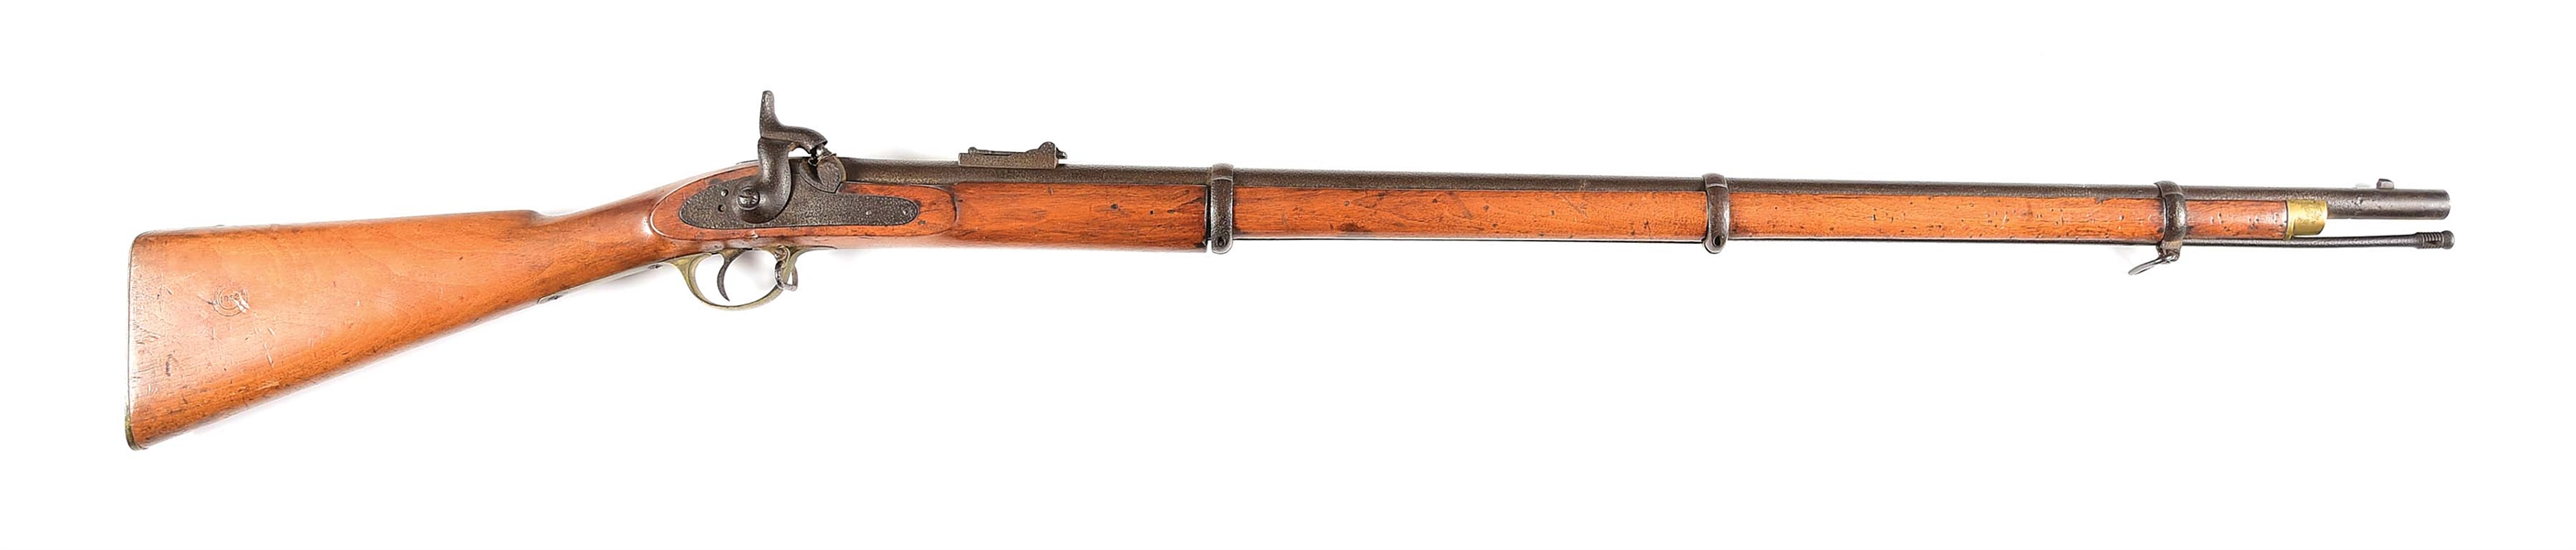 (A) UNSIGNED BRITISH PERCUSSION RIFLE.